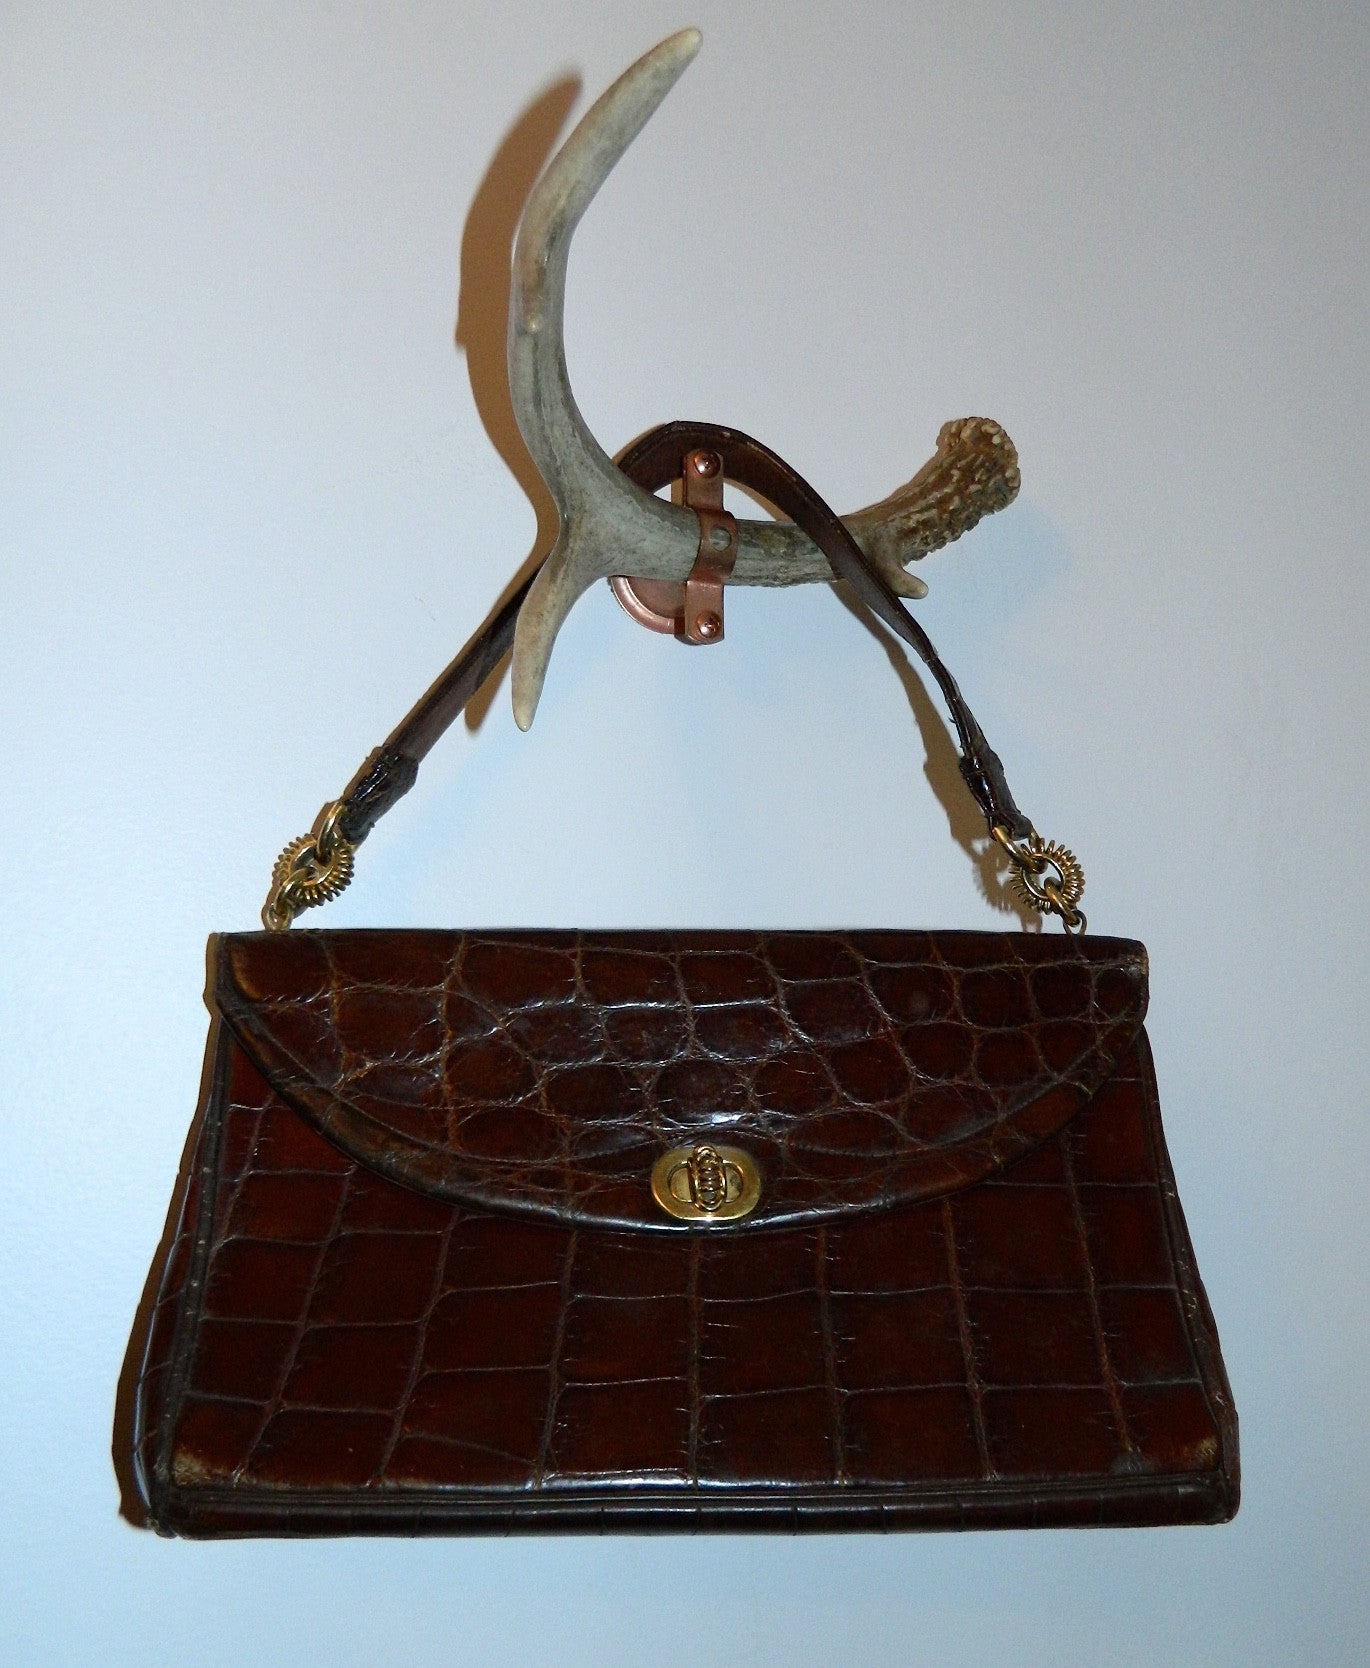 vintage LOEWE alligator handbag 1940s turn lock brown gator kelly bag